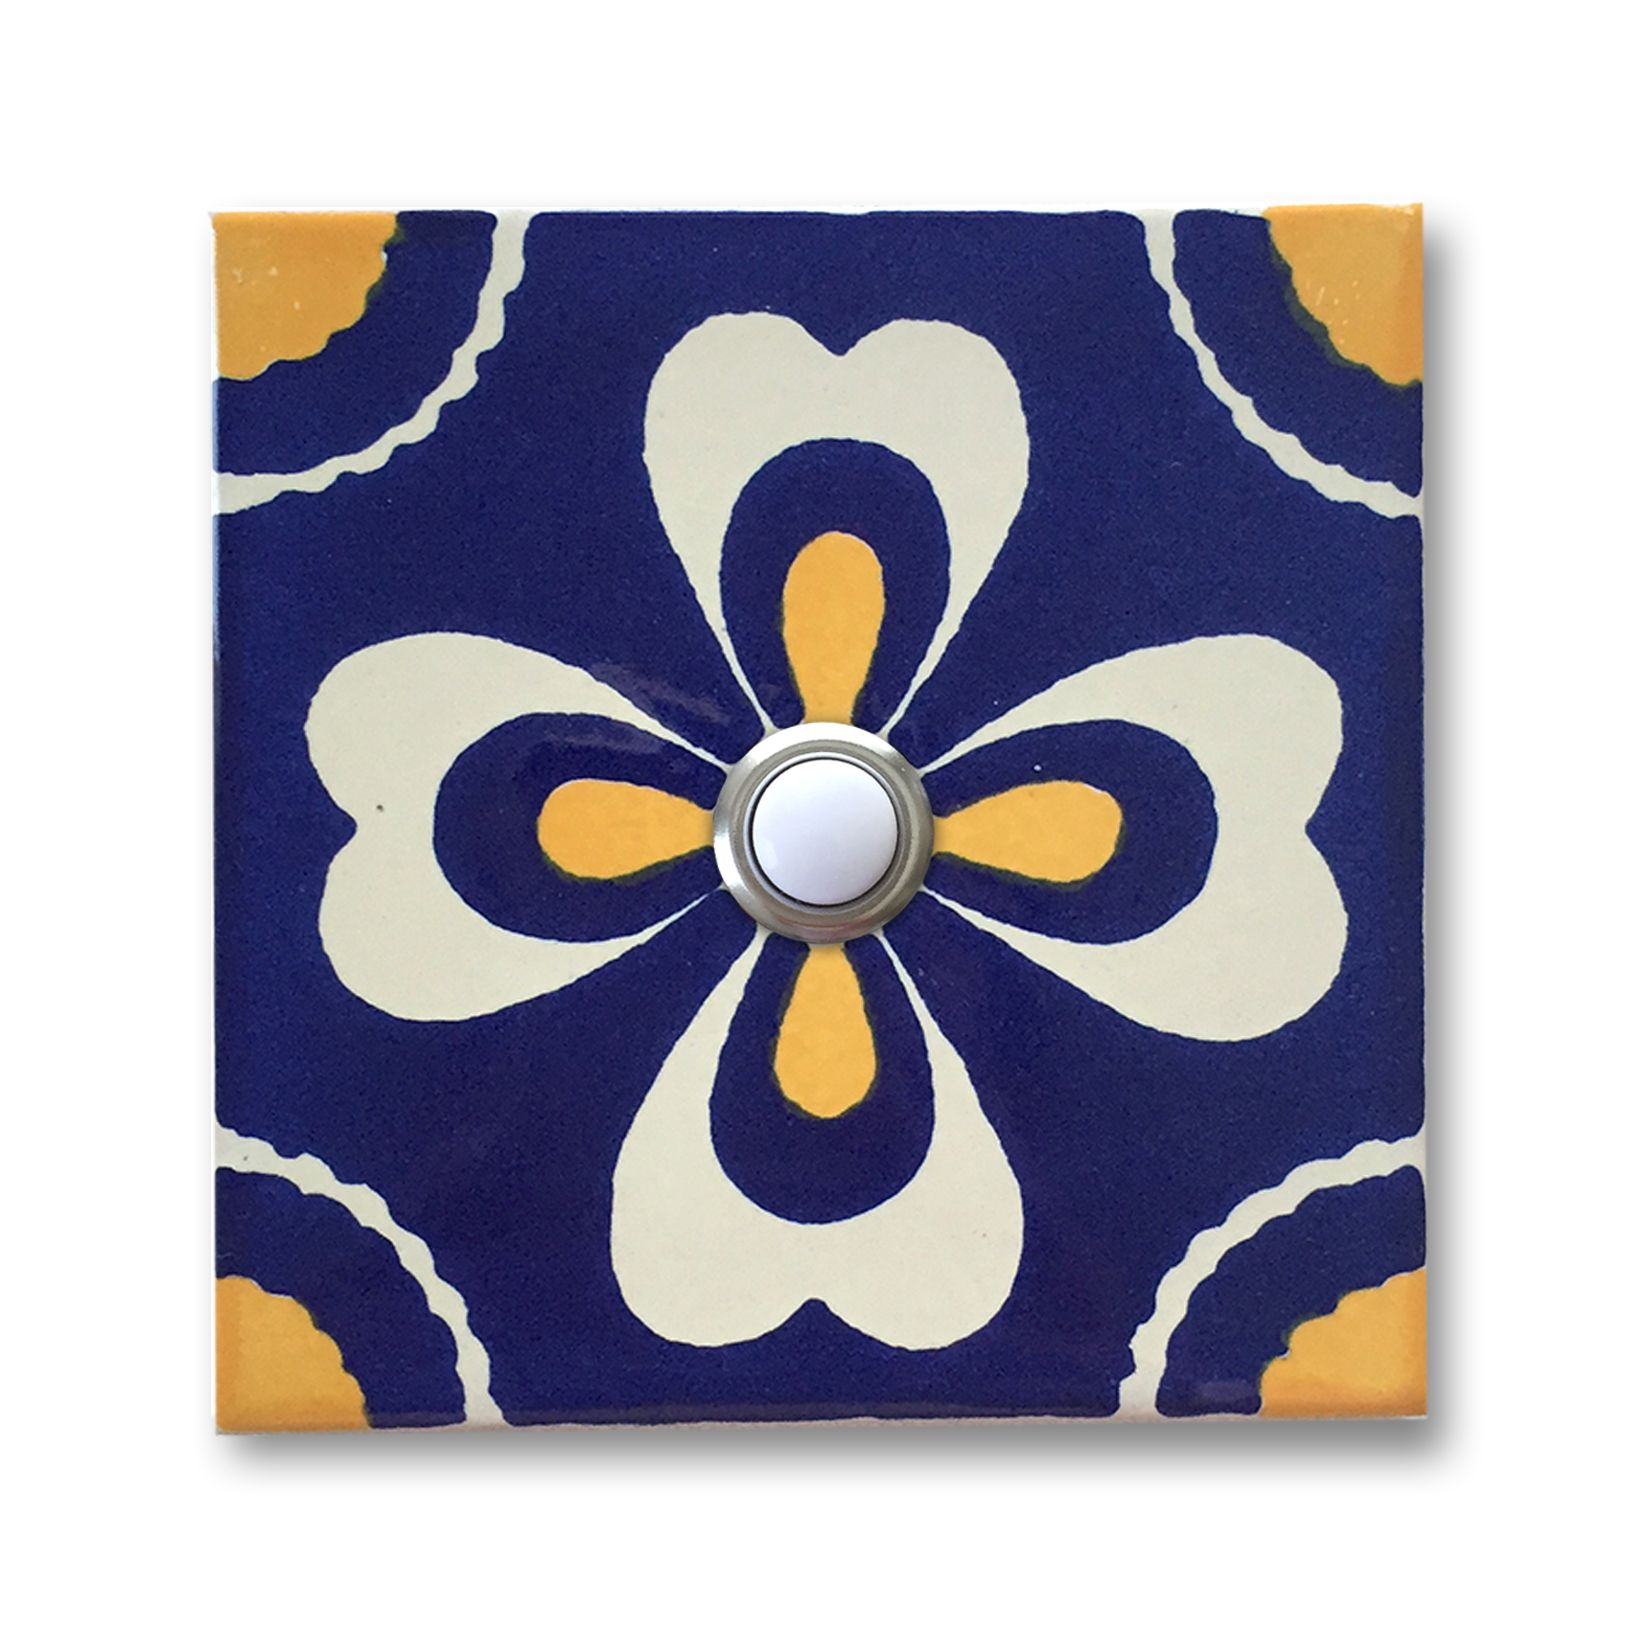 As seen in hgtv magazine julyaug 2017 issue 100 handcrafted as seen in hgtv magazine julyaug 2017 issue 100 handcrafted ceramic tile dailygadgetfo Images